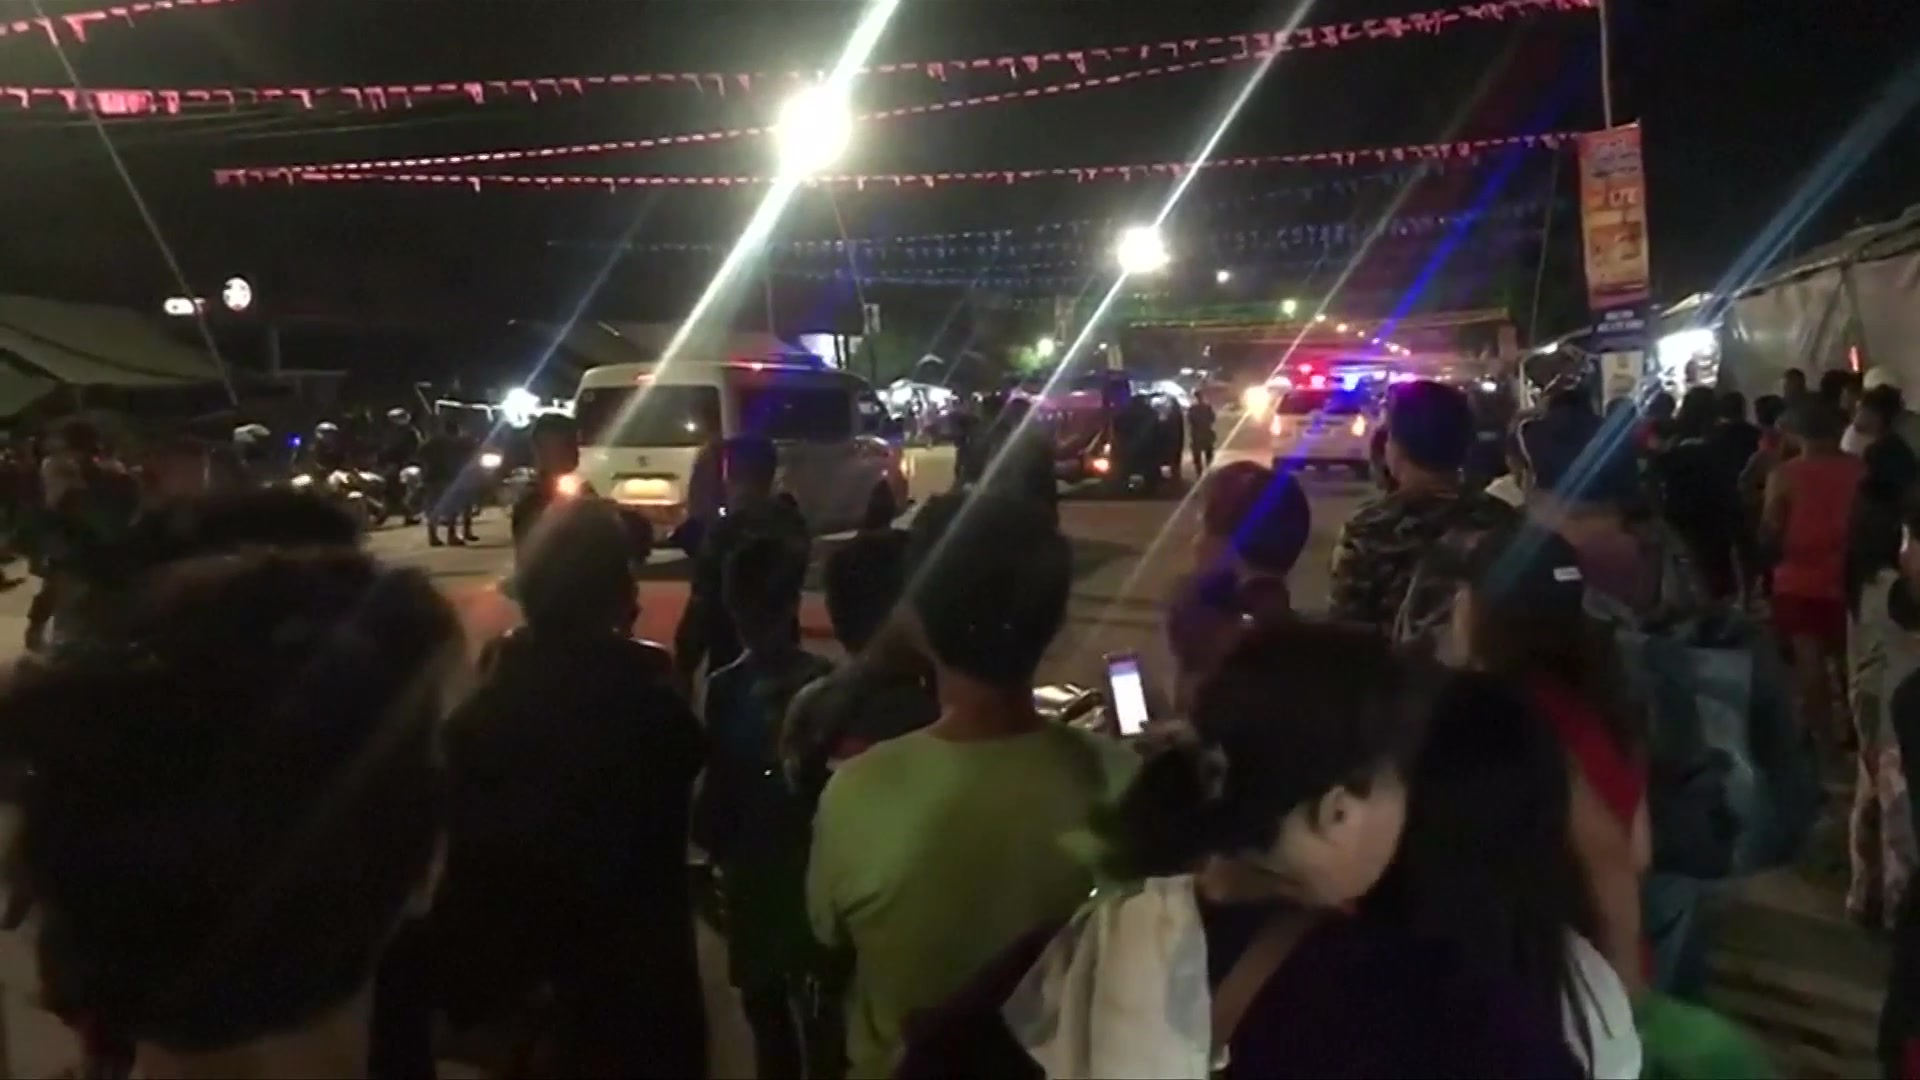 Video: Bombing at Philippines street festival leaves 1 dead, wounds 35 - officials